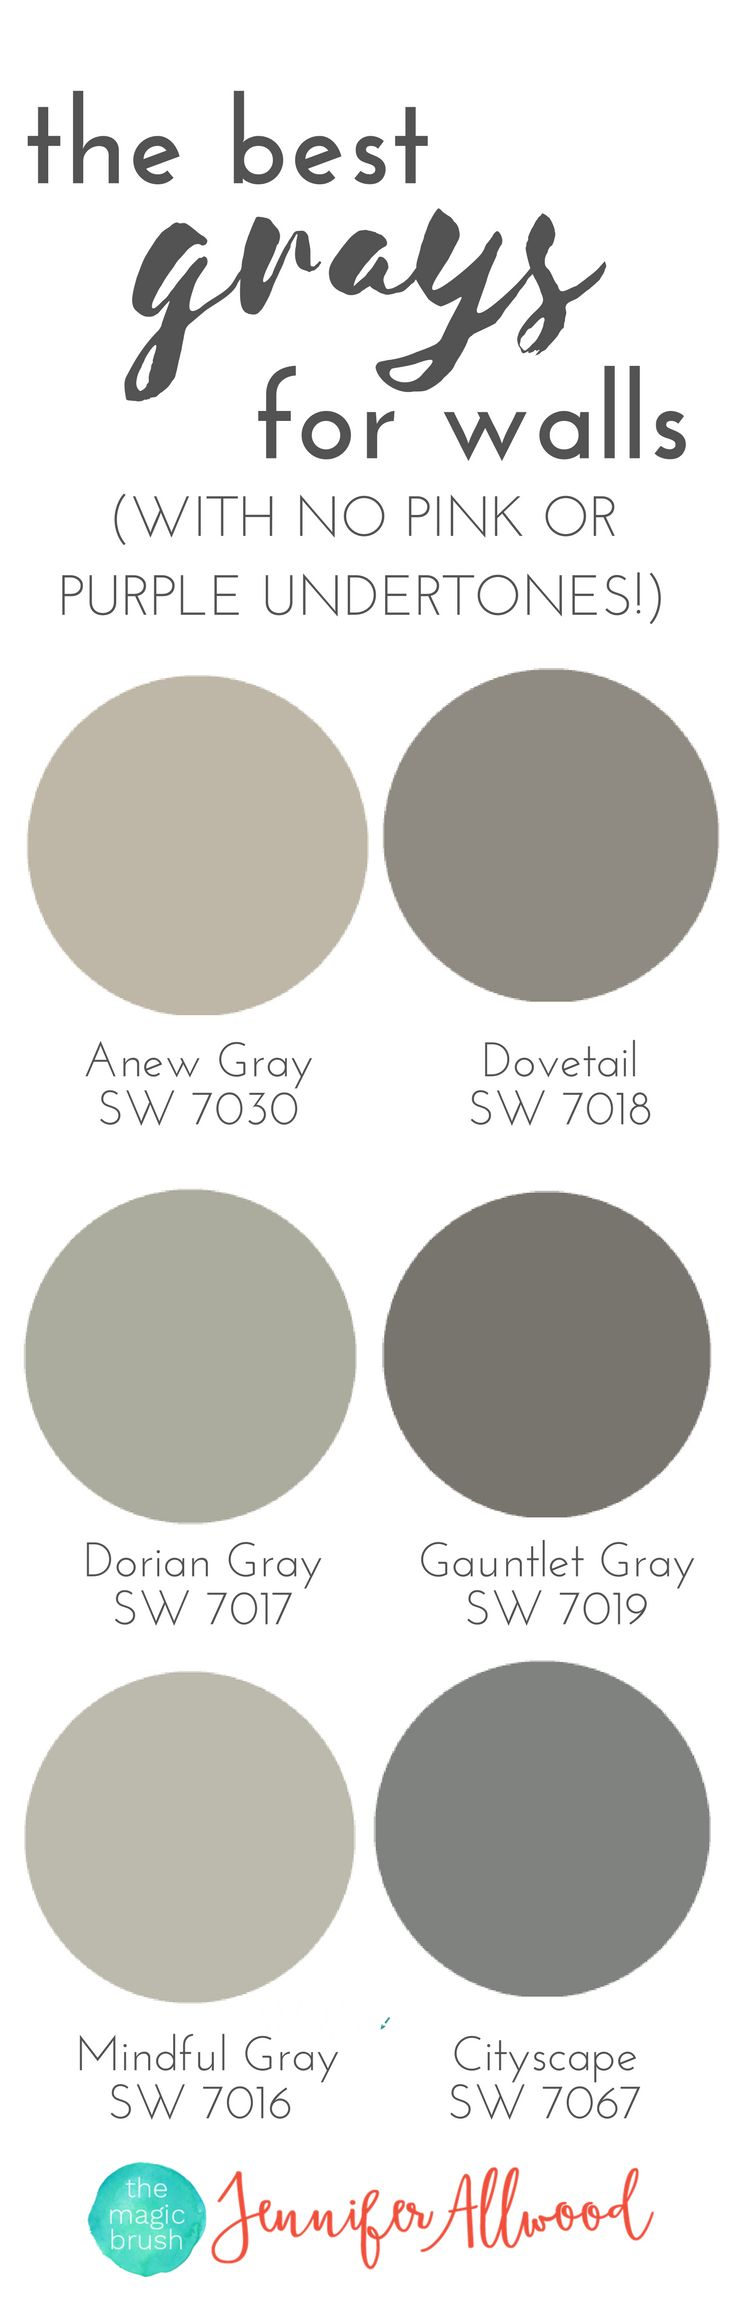 the best Gray Paint Colors for walls with no pink or purple undertones | Magic Brush | Jennifer Allwood's Top 50 Wall Paint Colors | Paint Color Ideas | | Interior Paint Colors | Best Paint Colors for Living Rooms